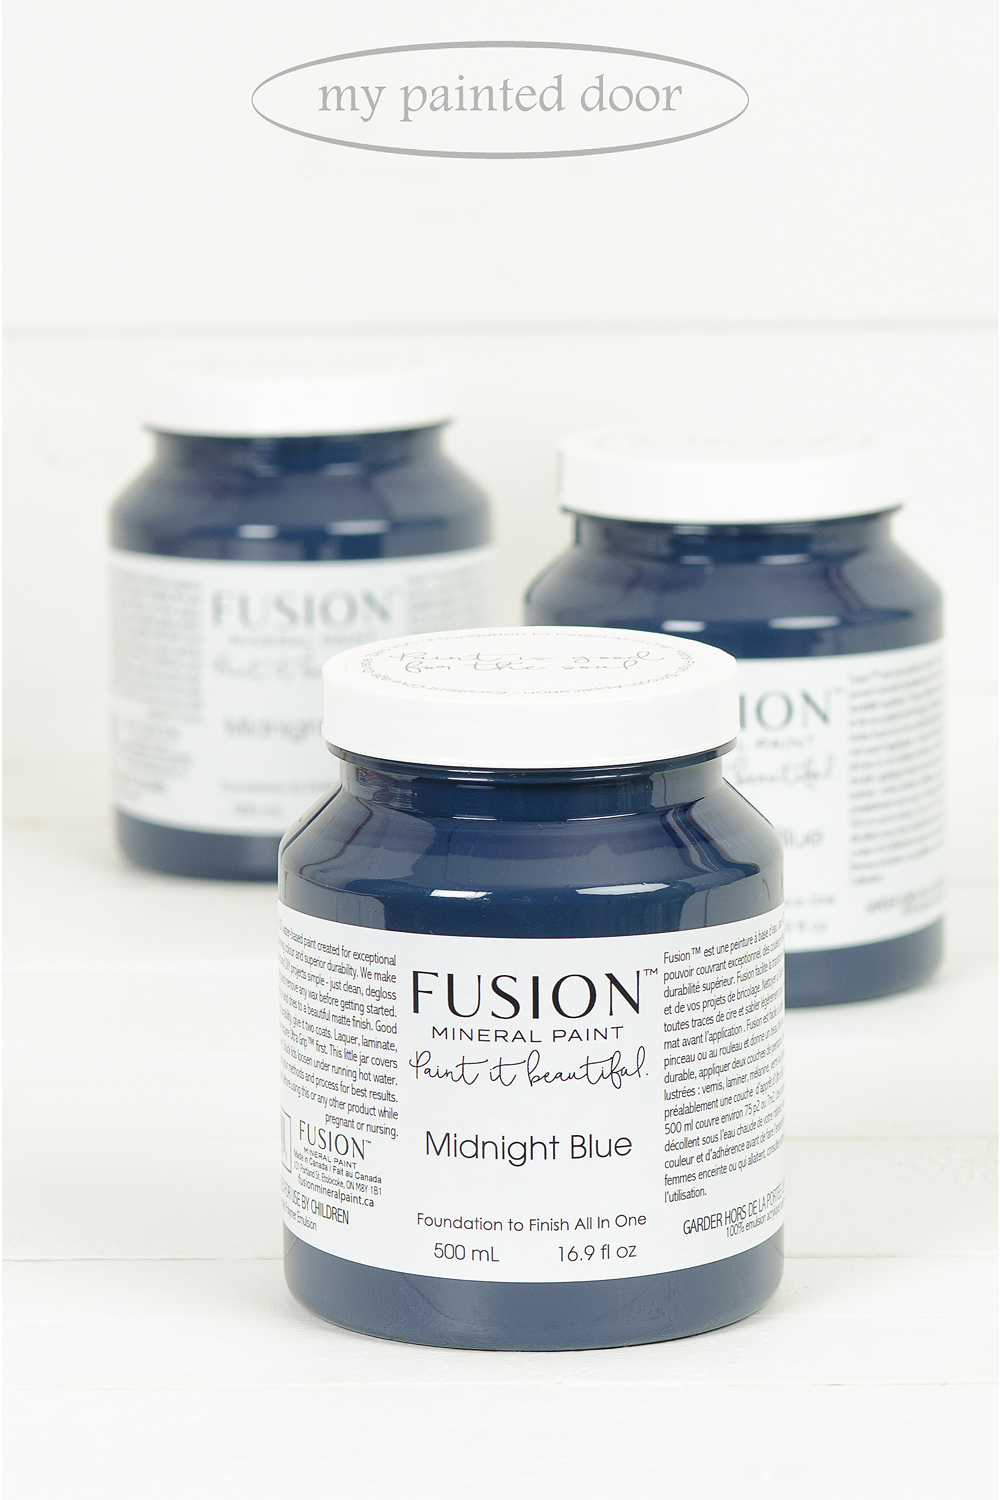 Midnight Blue ▪ This on trend rich dark blue on the edge of black is bound to make a statement and enrich any piece.  Fusion Mineral Paint available at My Painted Door (.com)